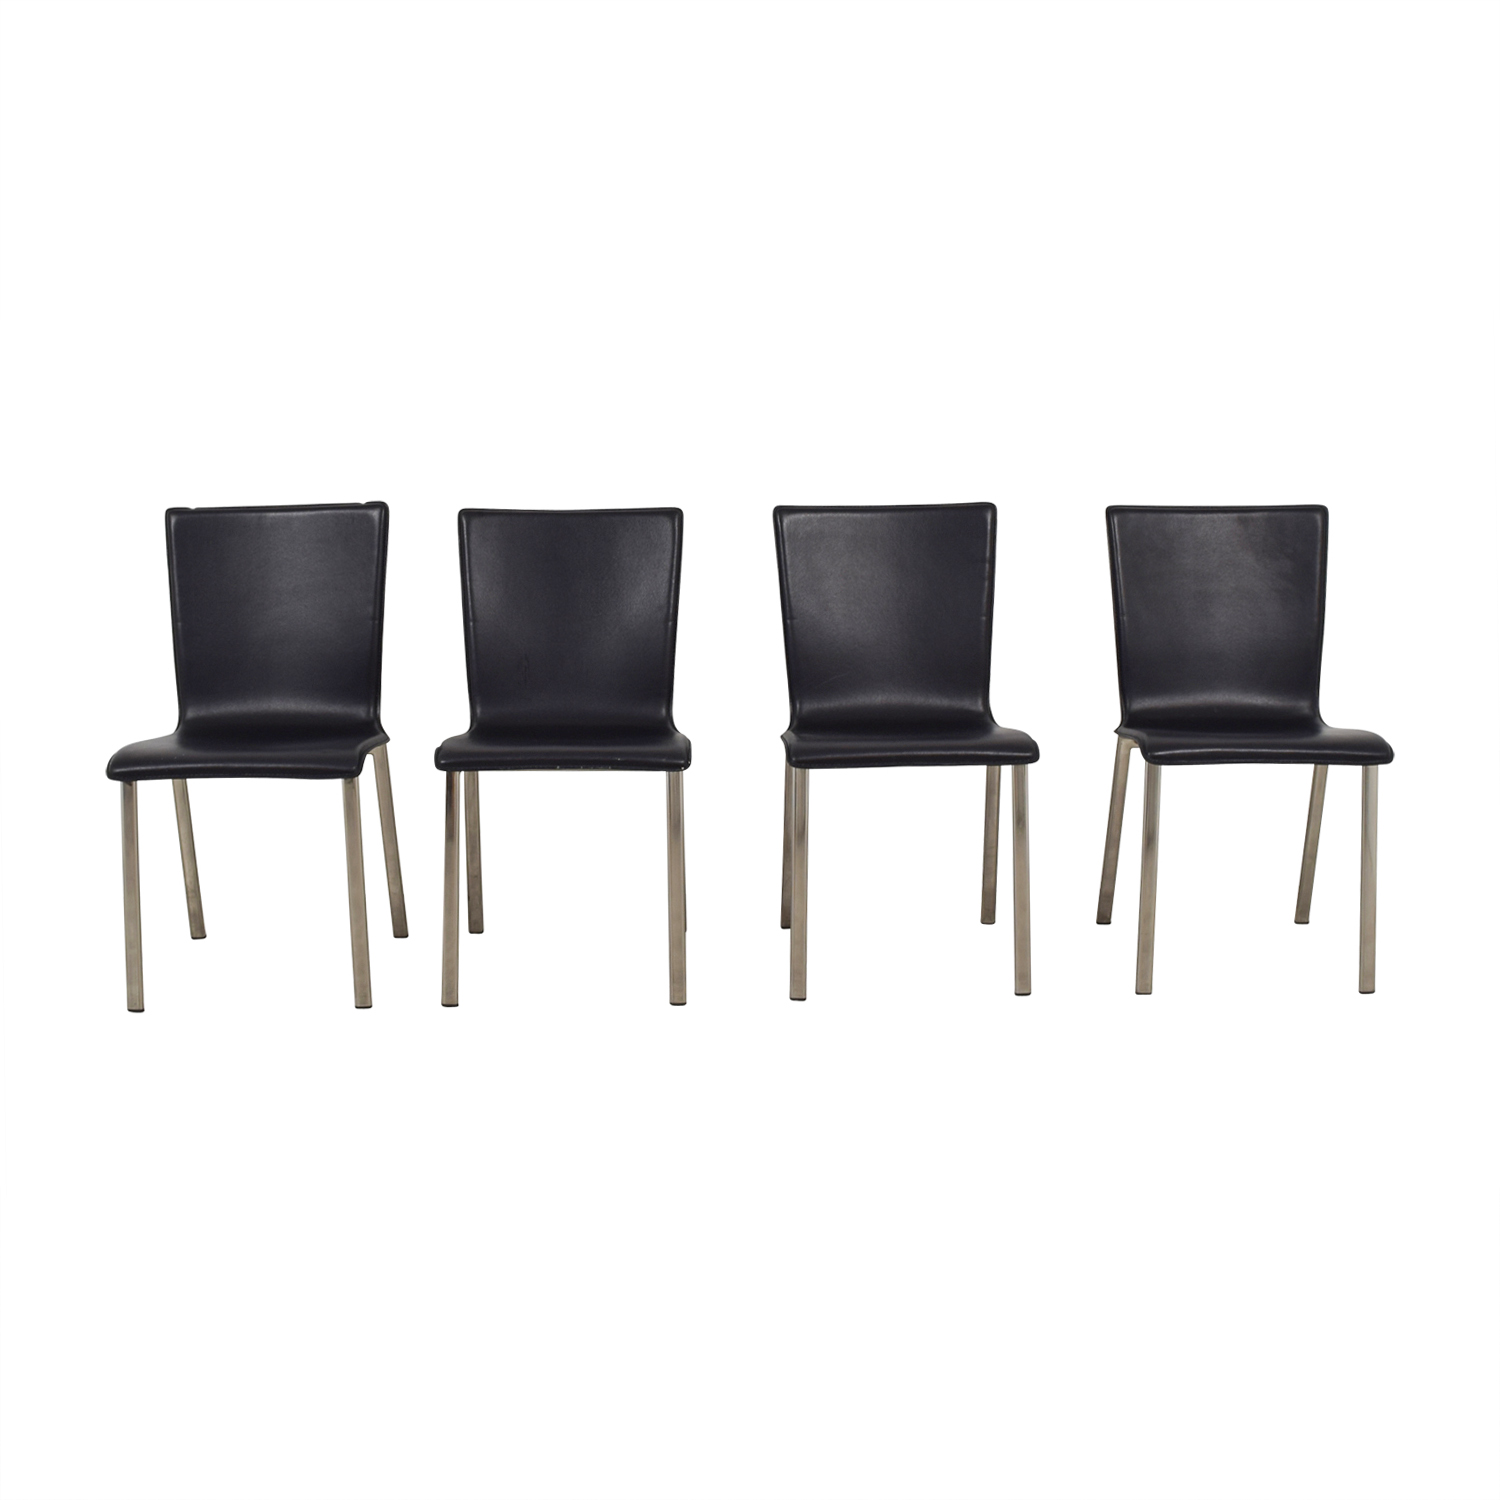 IKEA IKEA Black with Chrome Dining Chairs second hand